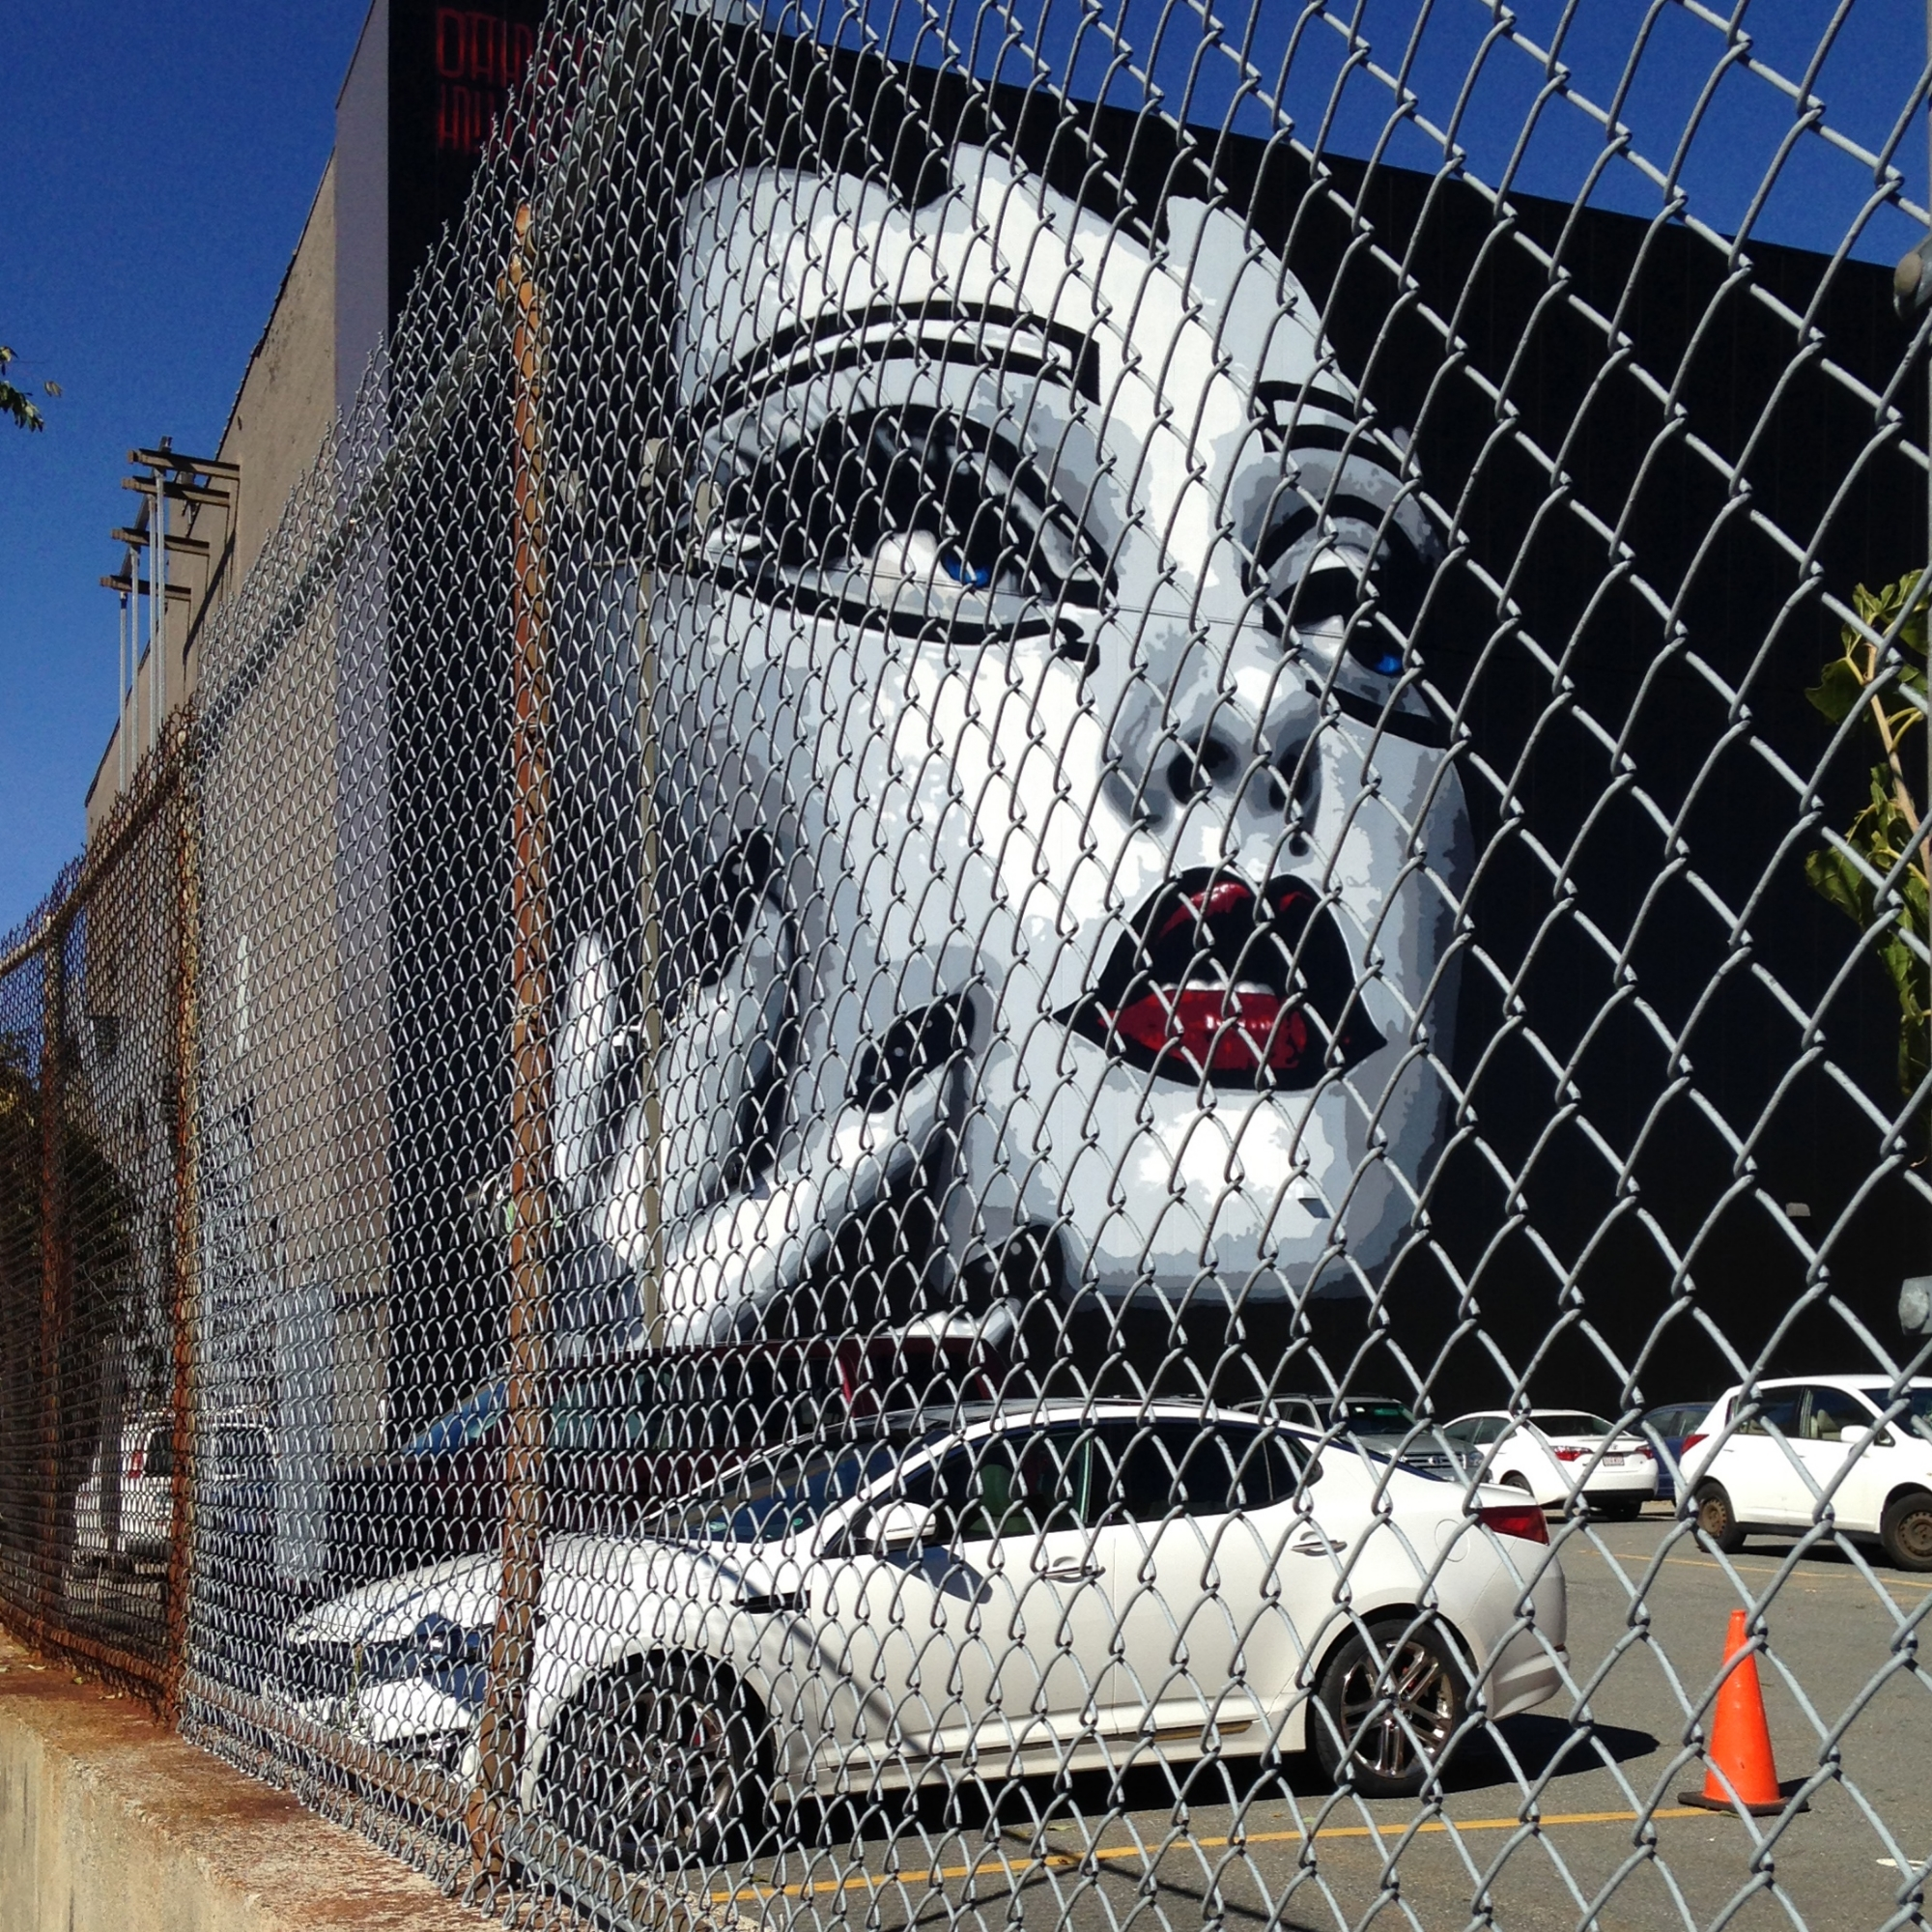 """Isn't this a great image? Maybe the woman on the wall is saying, """"Oy Vay! I'm going to cry if you don't get me out of this surface parking lot. Don't fence me in. Let's walk, bike or build a trolley up and down Main Street."""" What do you think she is thinking?"""